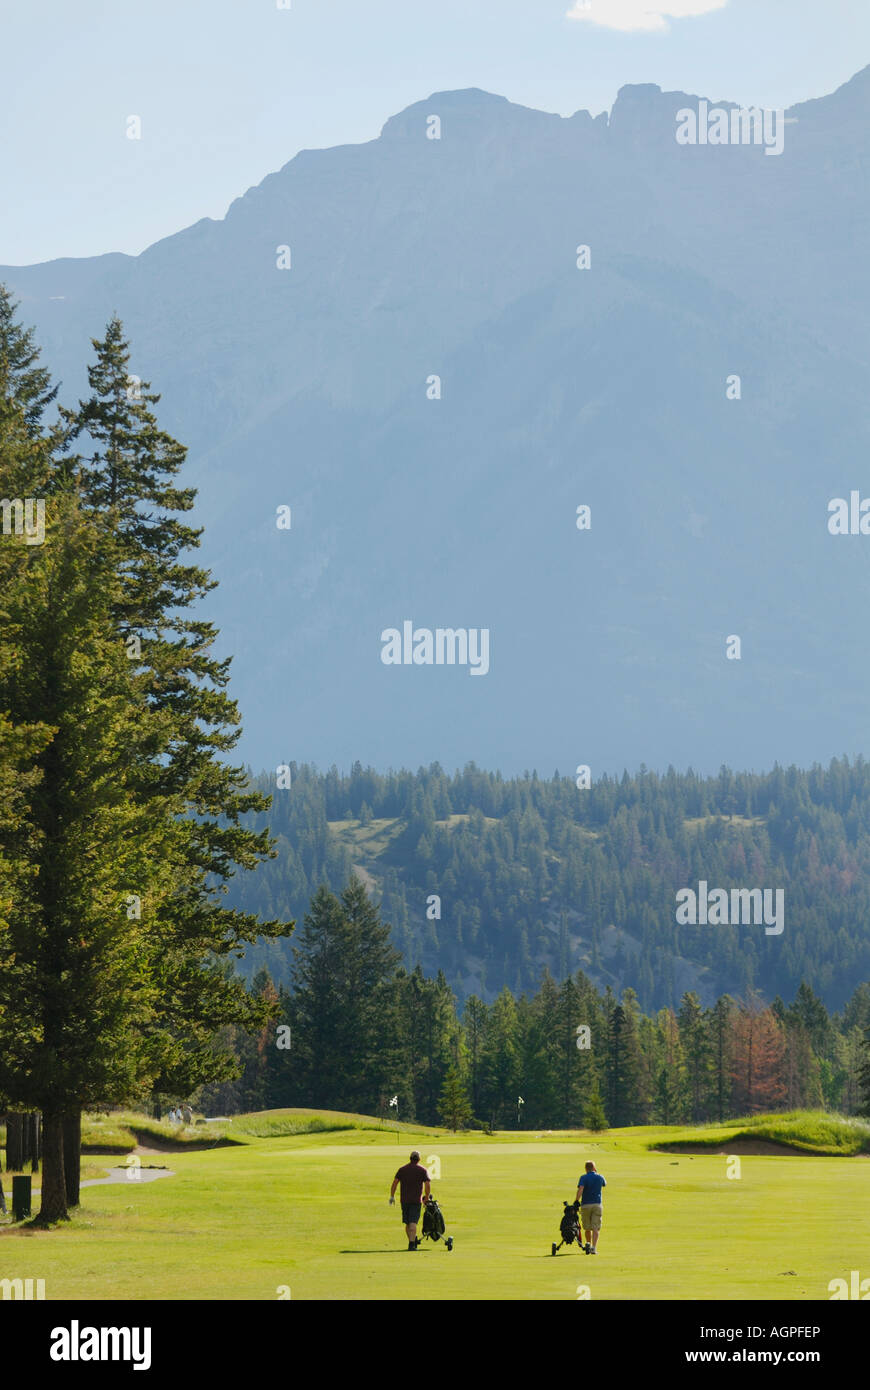 Banff Springs Golf Course one of the world s most scenic courses in the Banff National Park in Alberta Canada - Stock Image